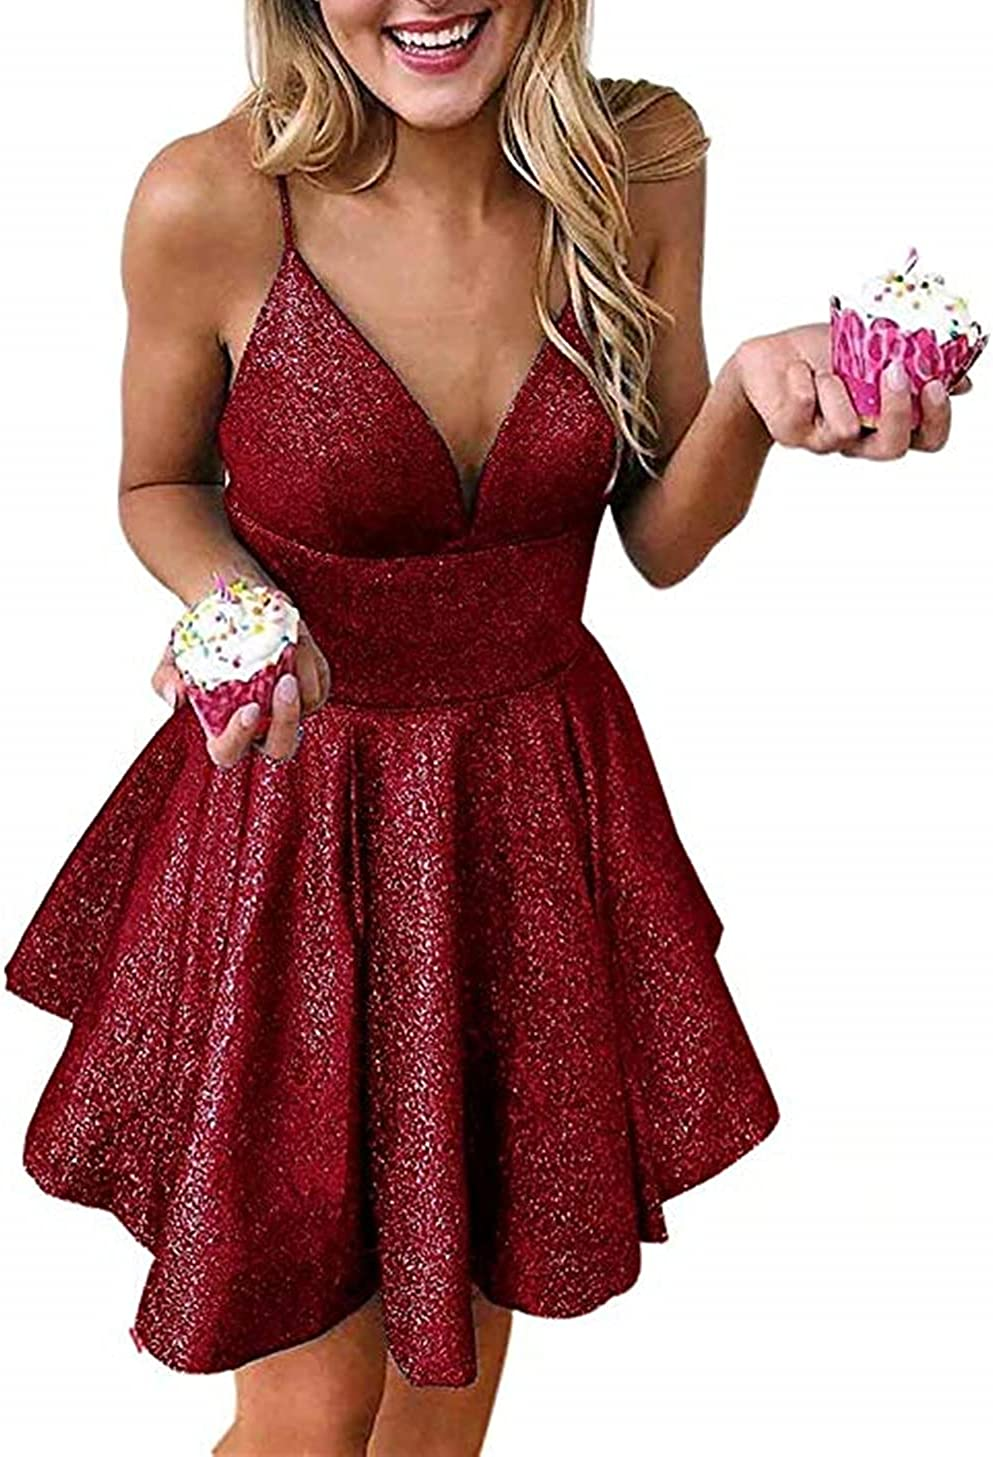 LINDO NOIVA Women's Spaghetti Straps Short Homecoming Dress Glittery Cocktail Party Gowns LN136